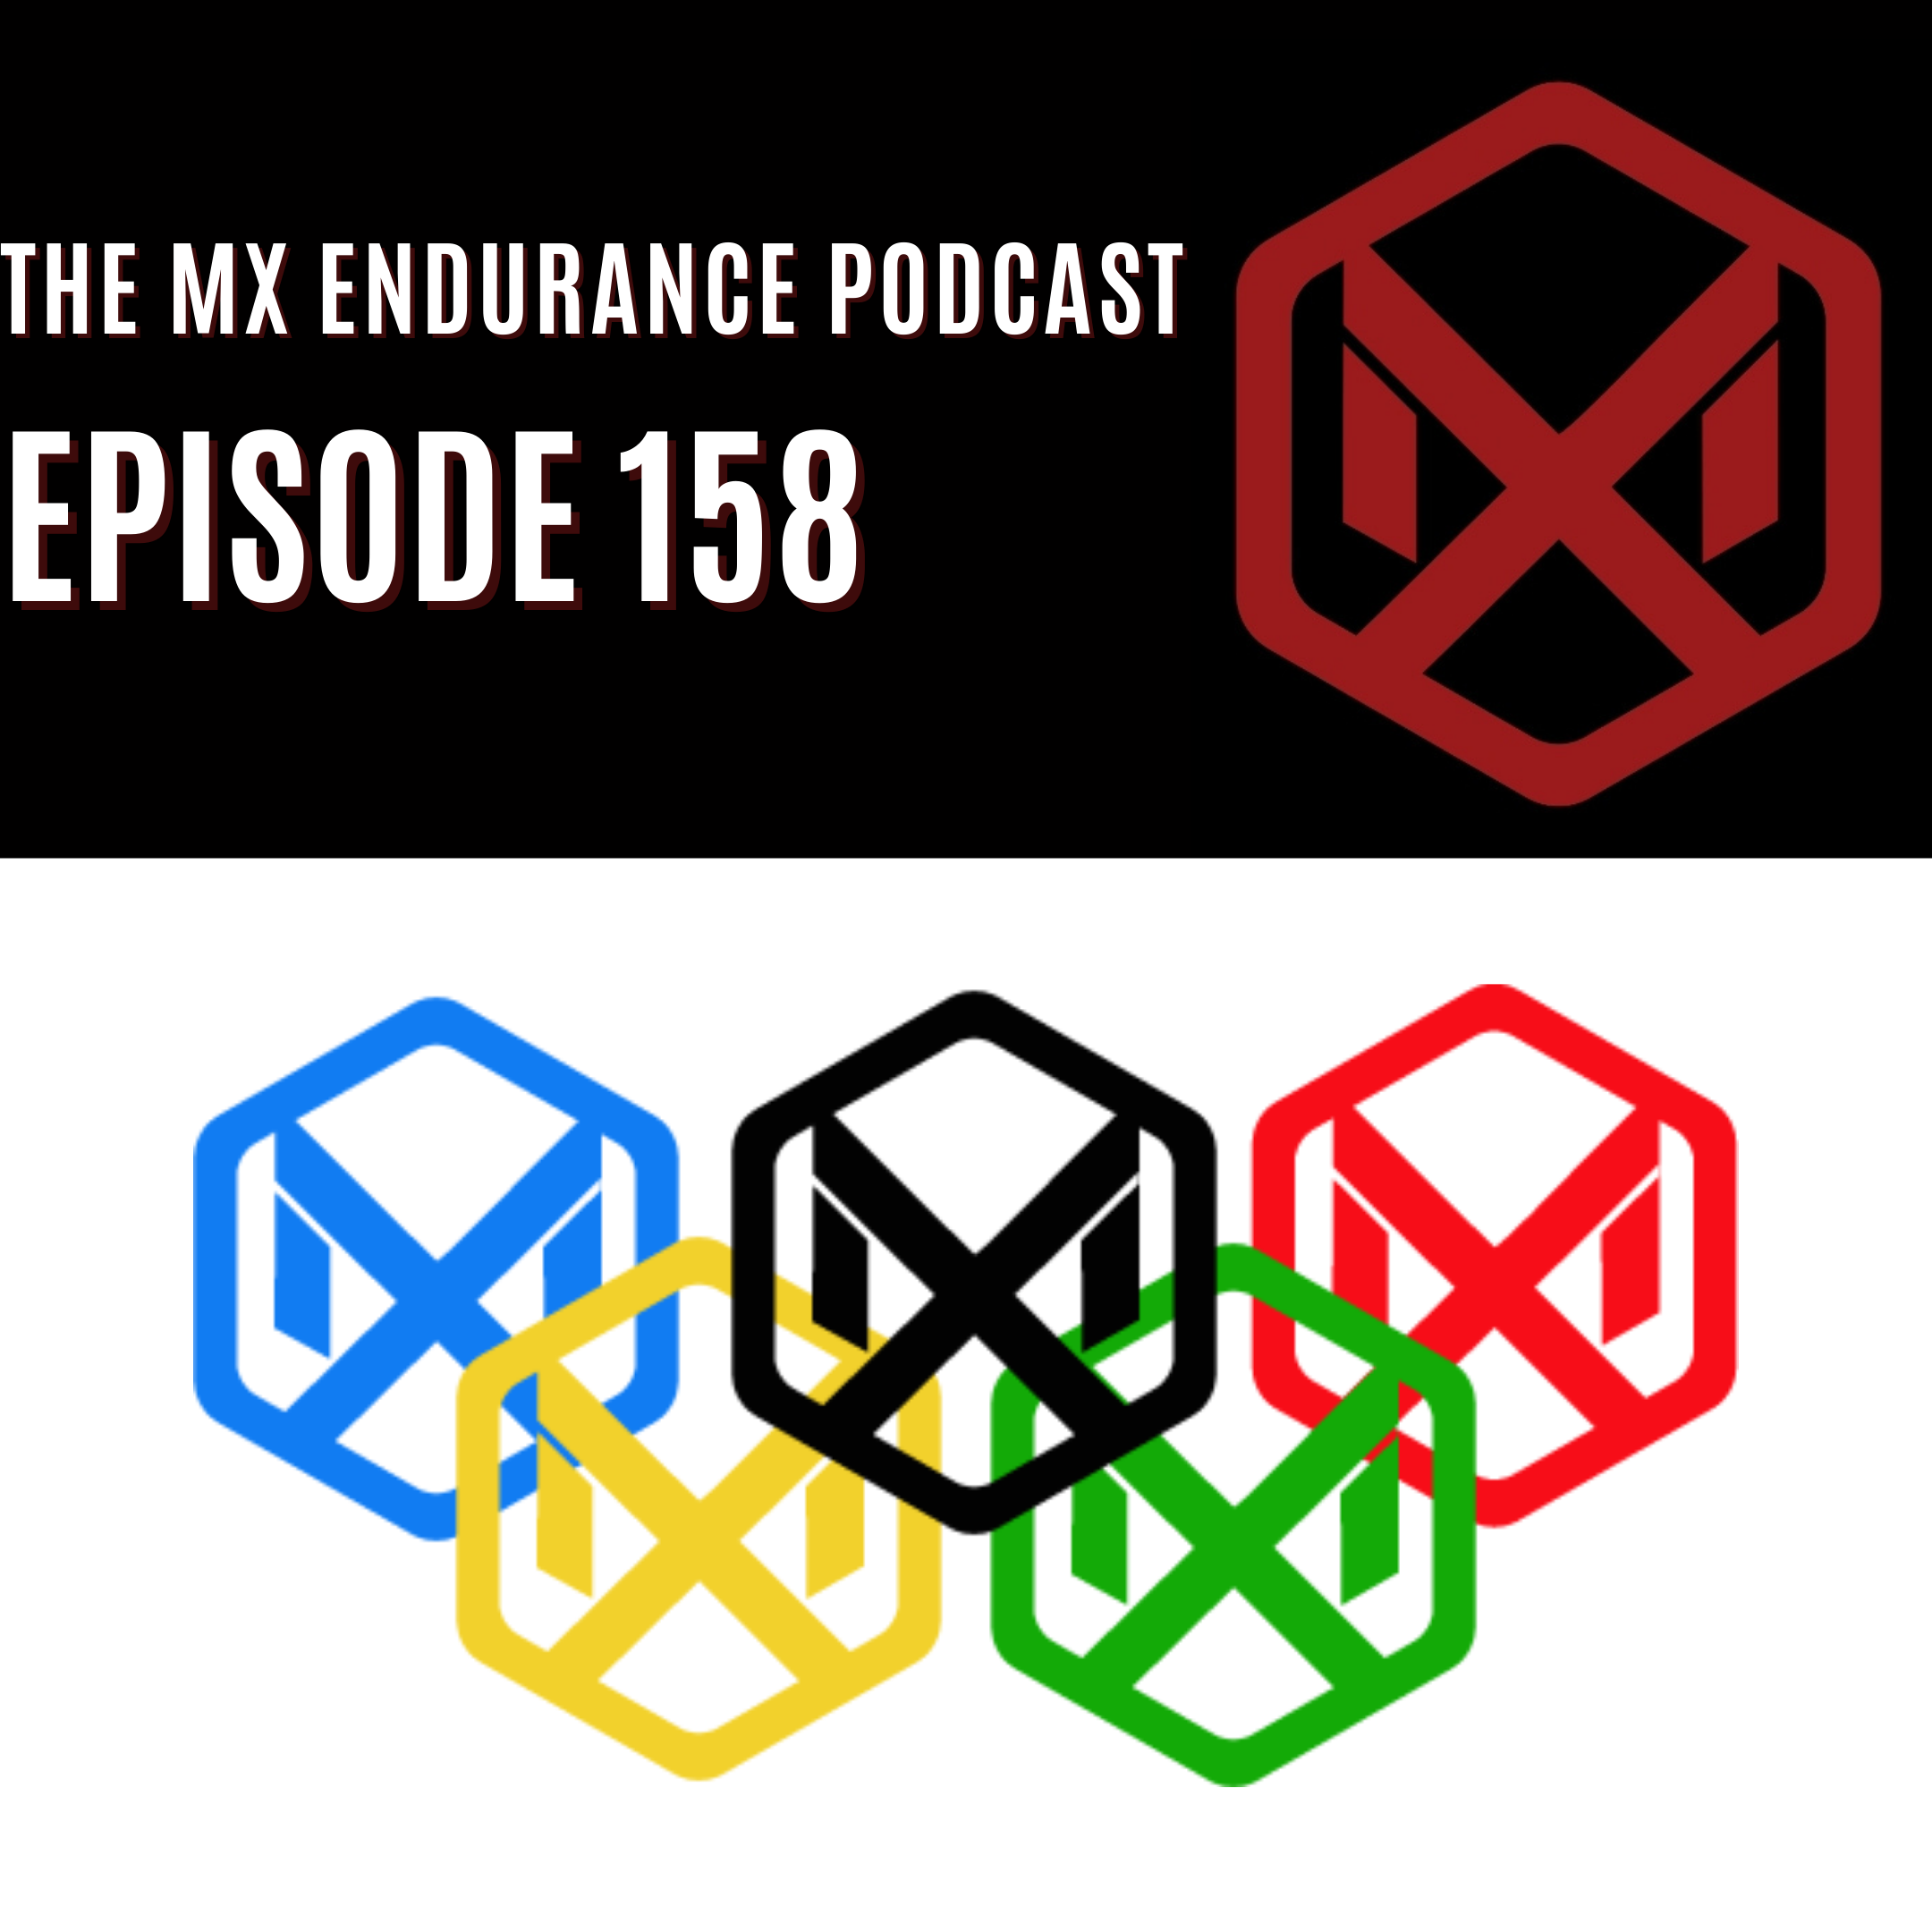 #158 - The Olympics Preview with Chris McCormack